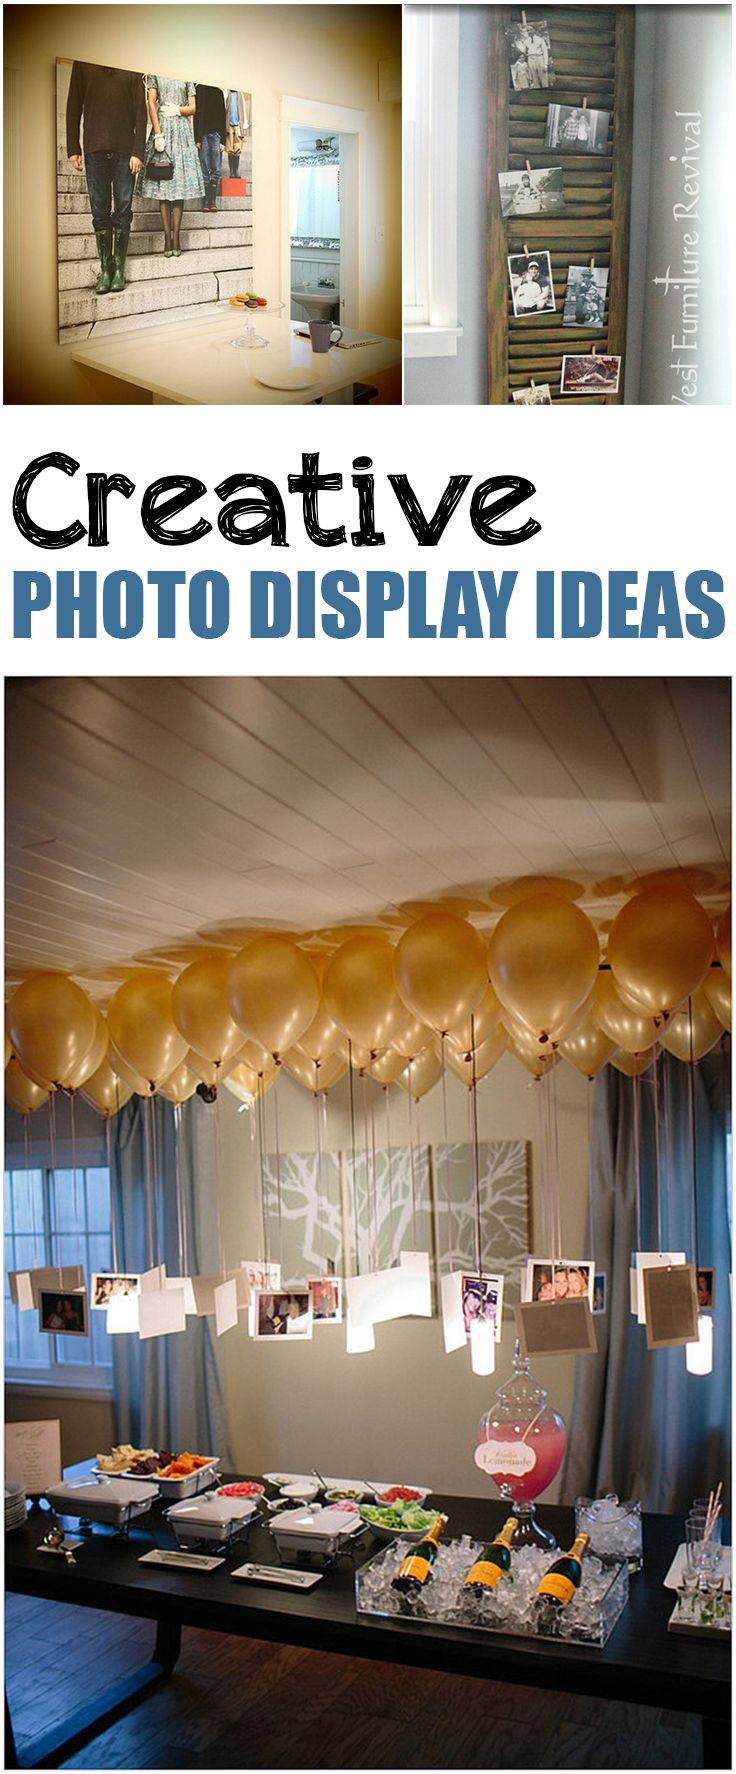 Fun photo display ideas. Great ideas and tutorials for how to display your pictures for parties or home decor.